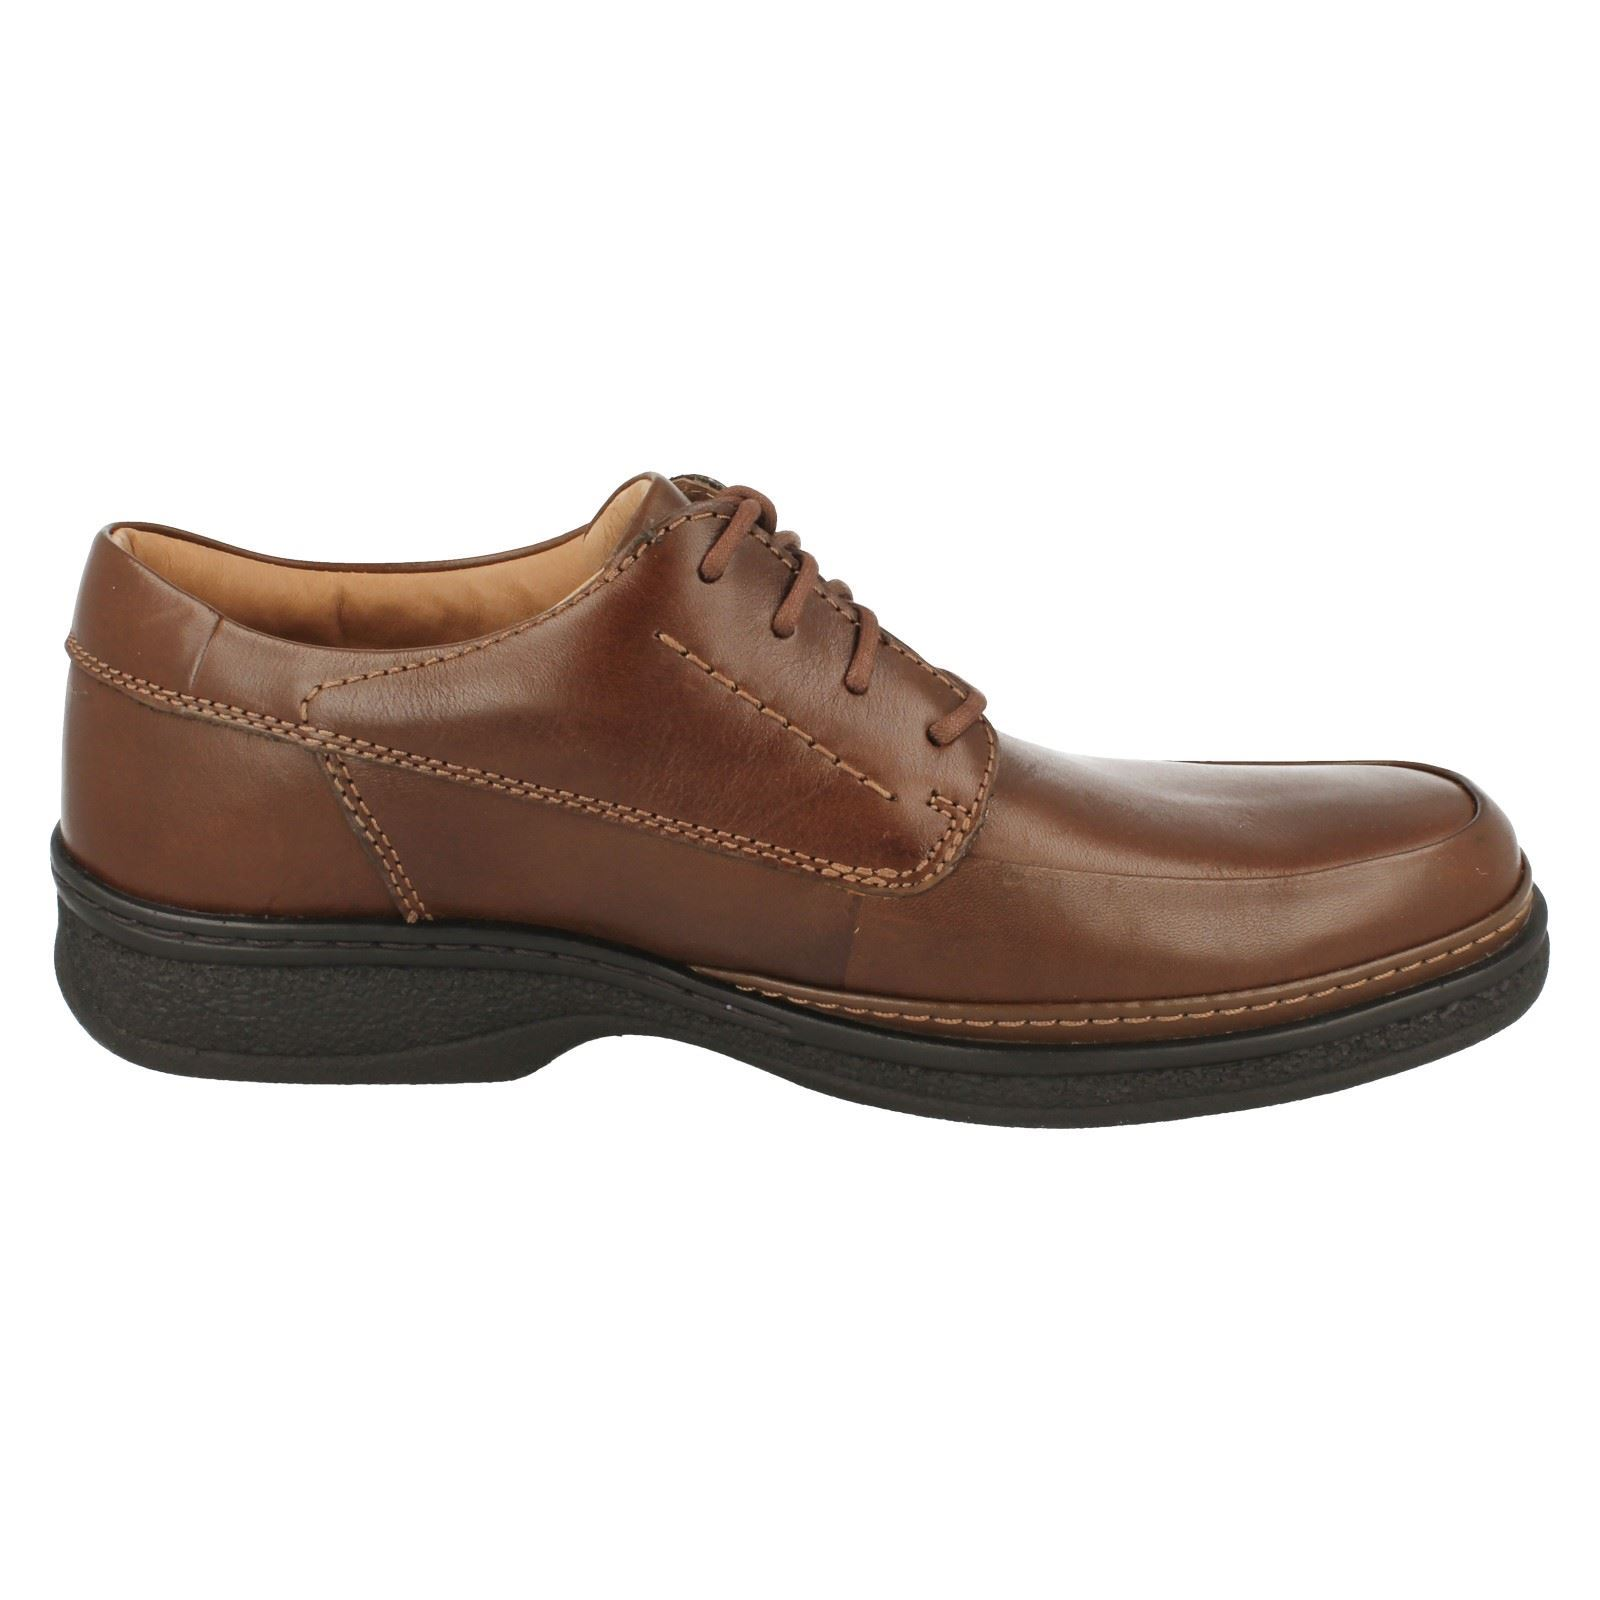 Up Uomo Clarks Formal Lace Up  Schuhes 'Stonehill Pace' b6d789